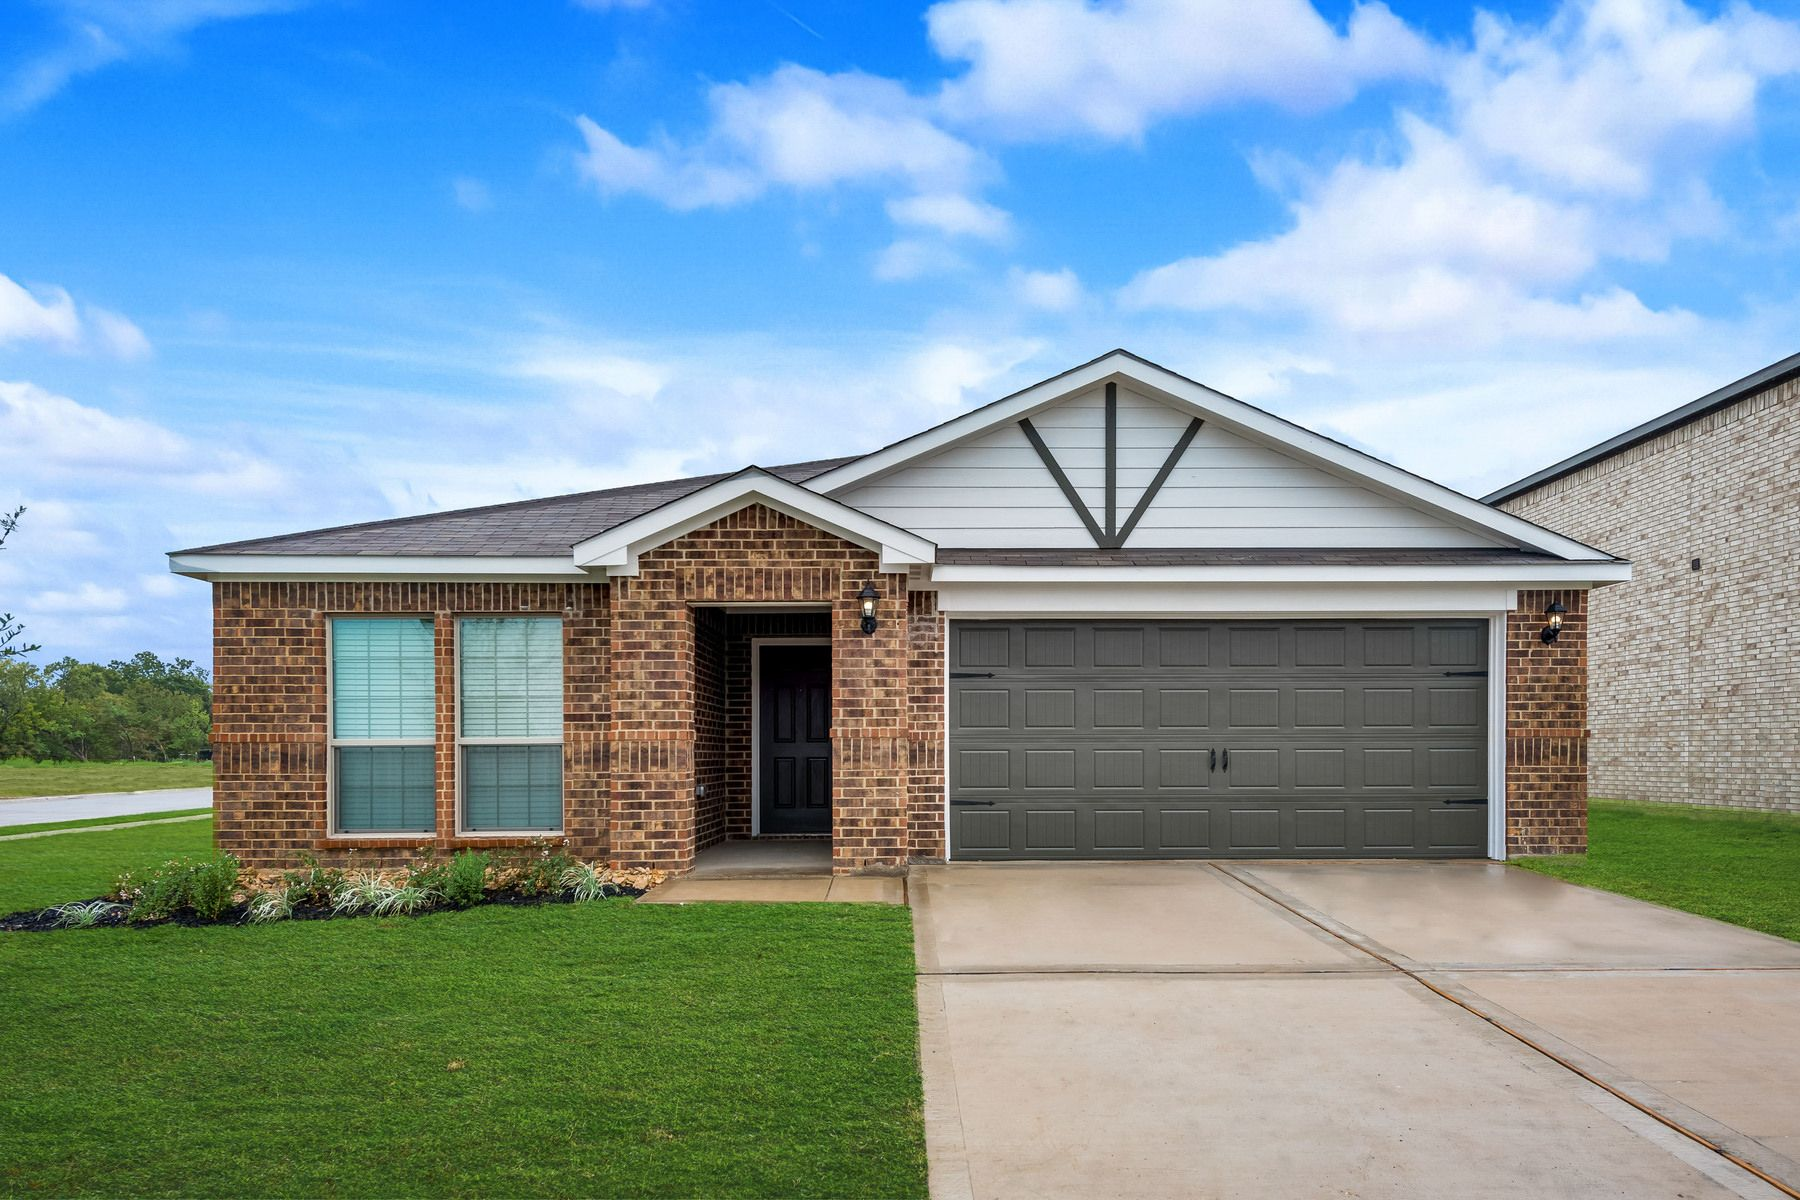 The Topeka by LGI Homes:The Topeka is a gorgeous one-story home at Seagoville Farms.